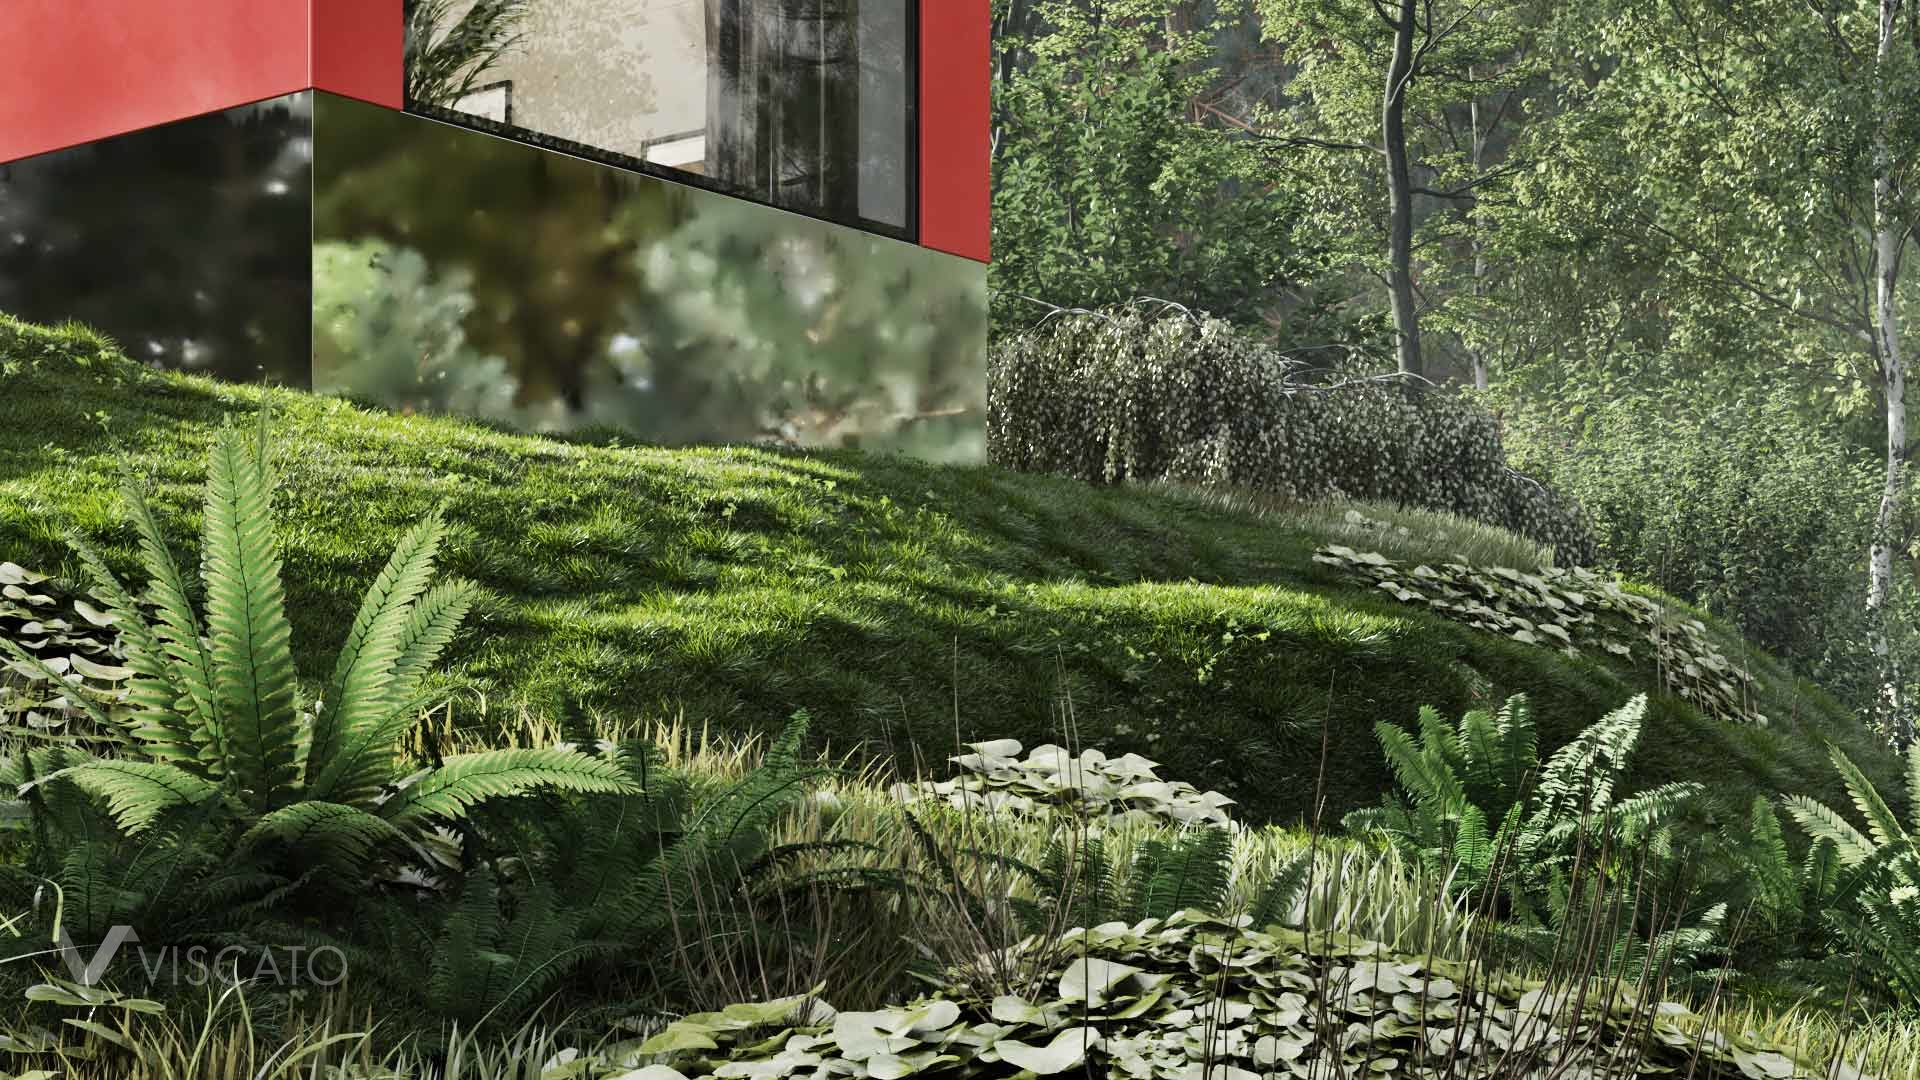 natural surroundings in 3D, viscato